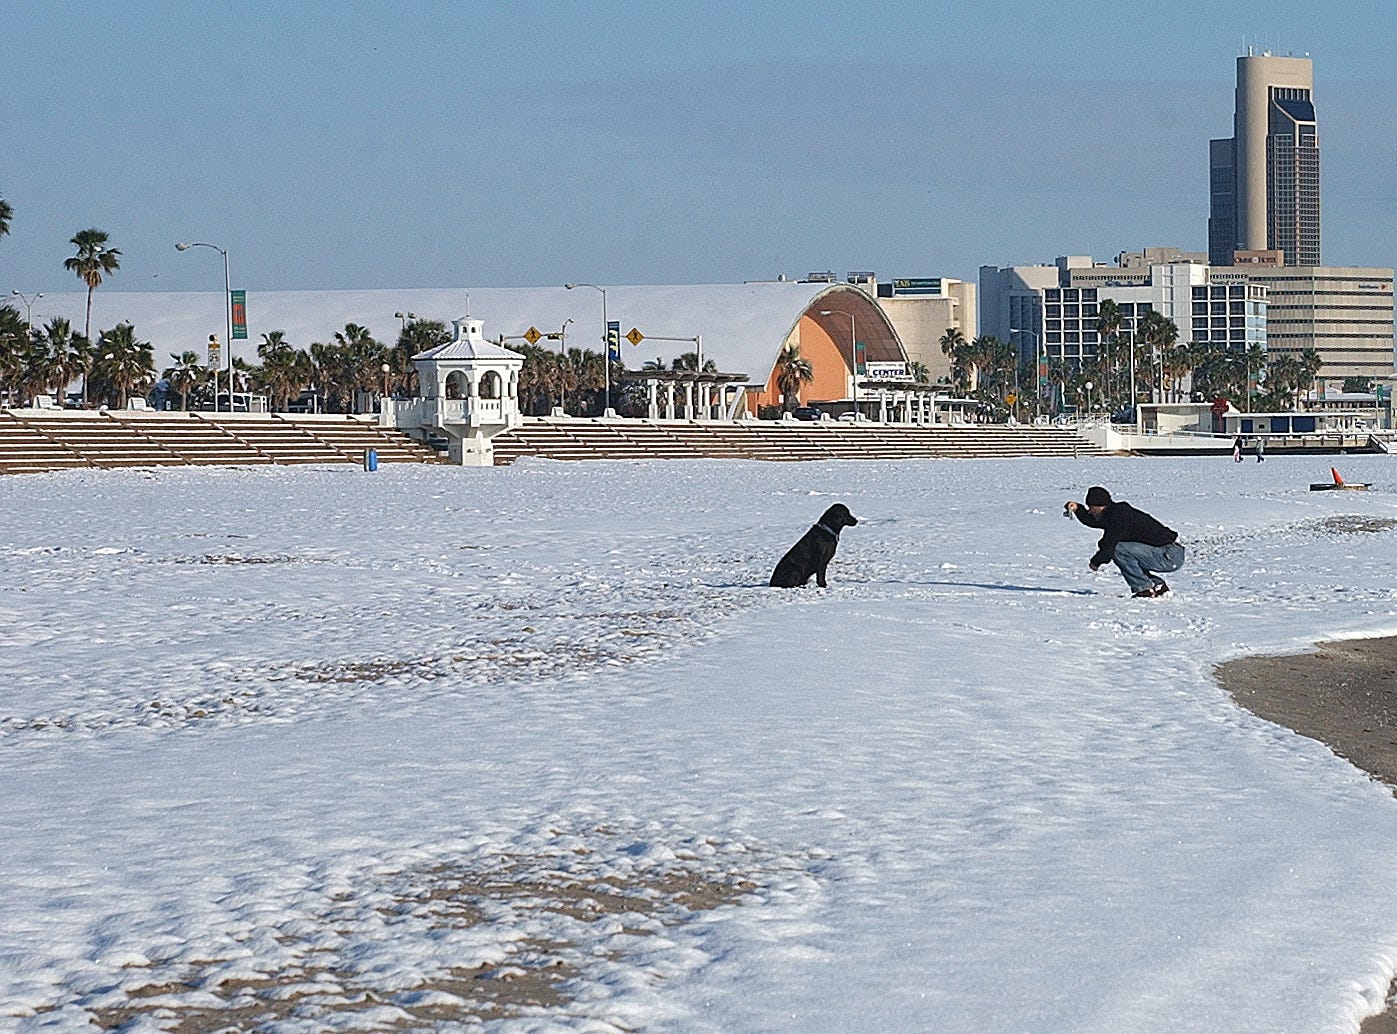 One lone walker took a photo of his dog in the snow on McGee Beach in downtown Corpus Christi on Dec. 25, 2004 following the Christmas snow.